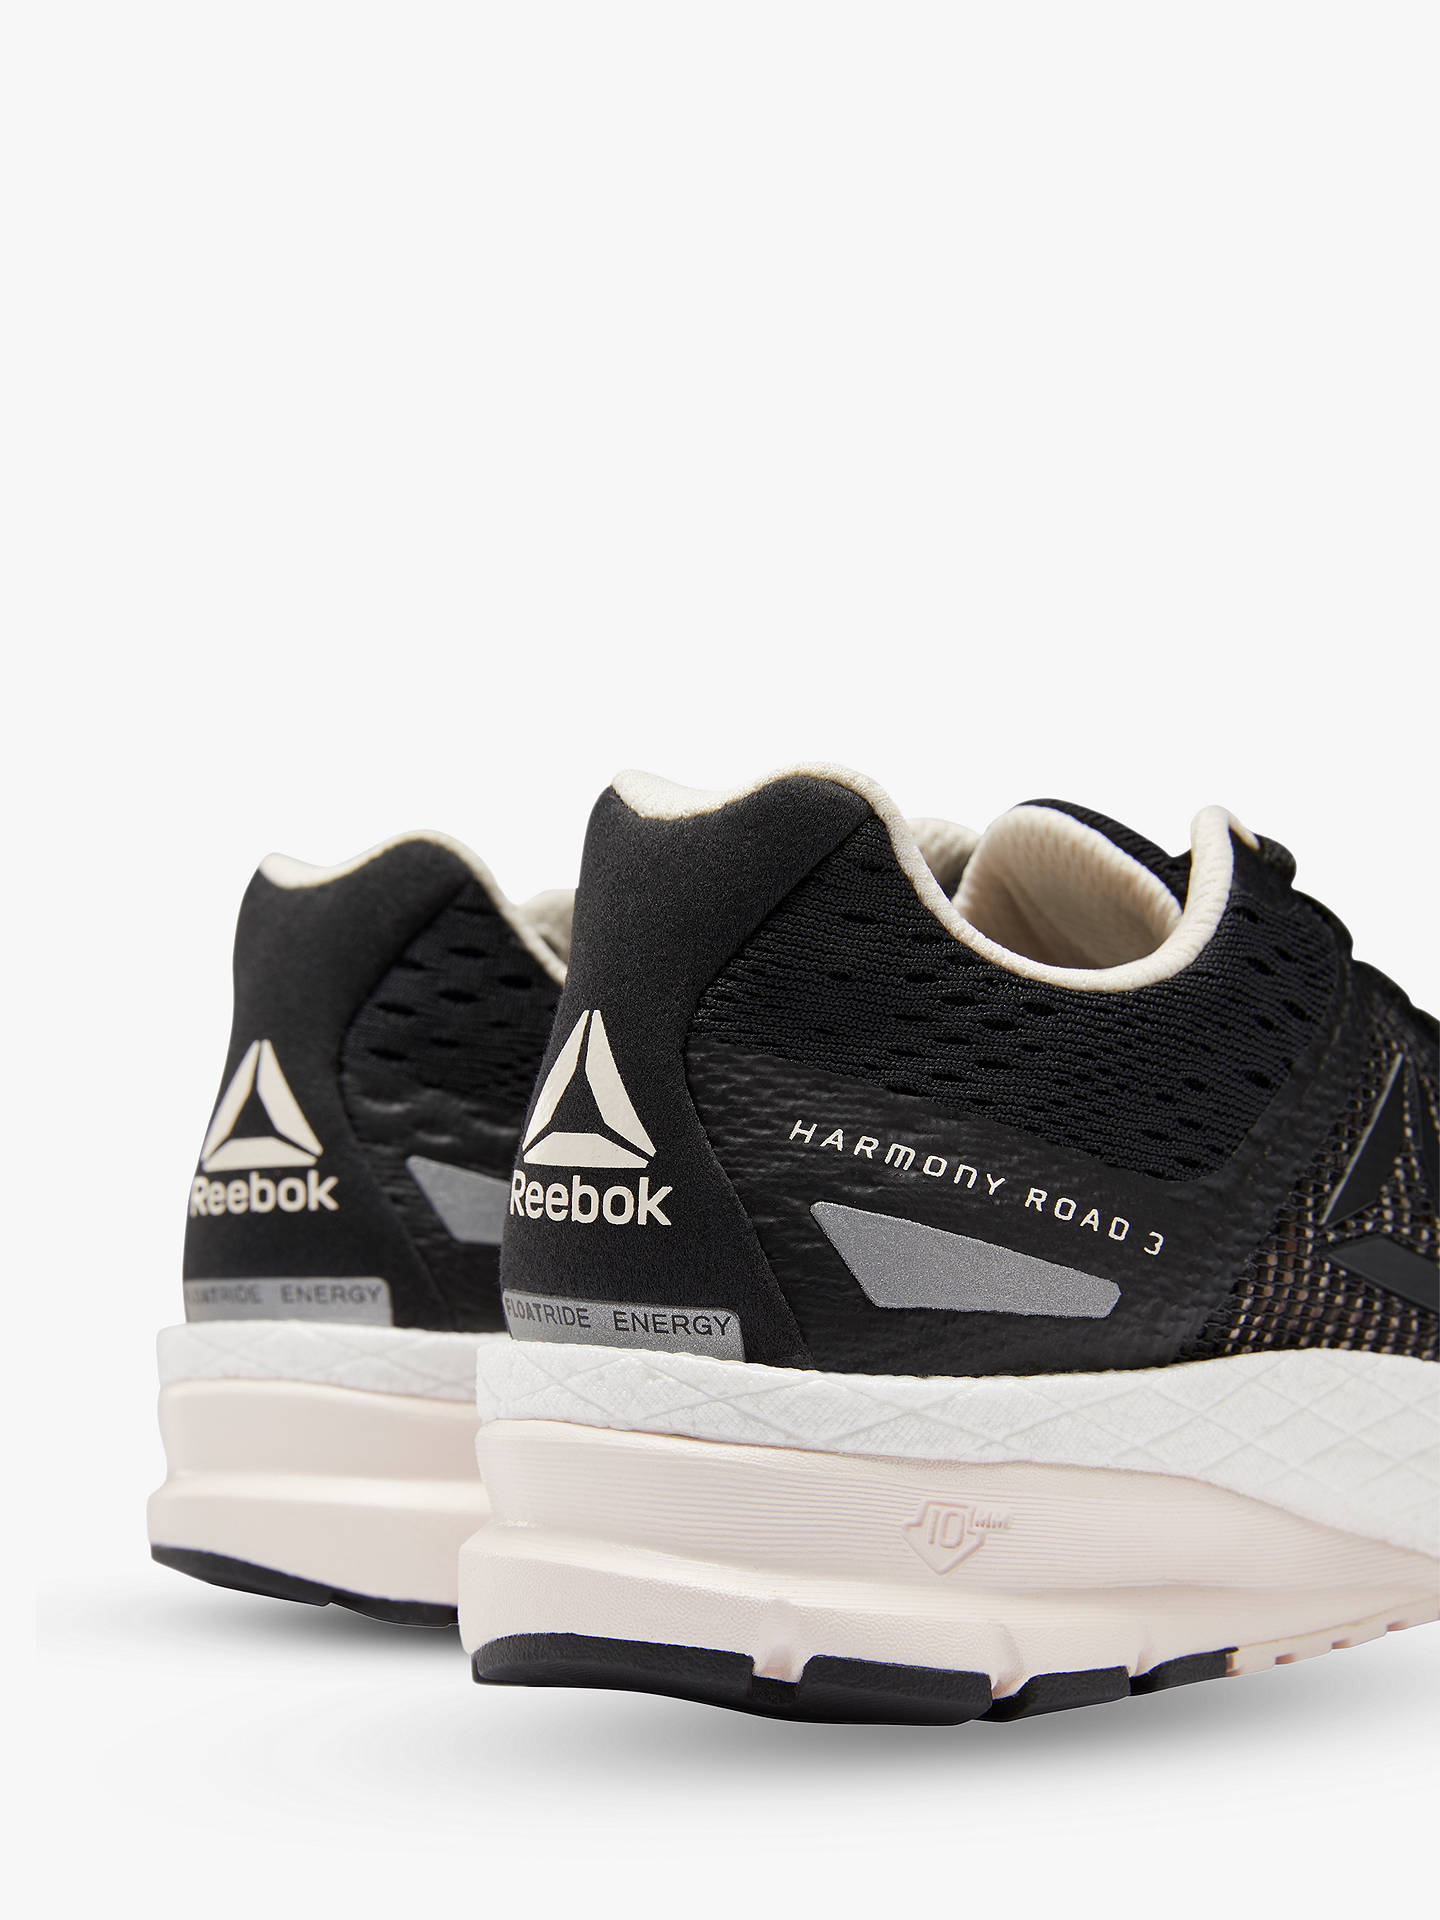 Buy Reebok Harmony Road 3.0 Women's Running Shoes, Black/Pale Pink/White, 5 Online at johnlewis.com